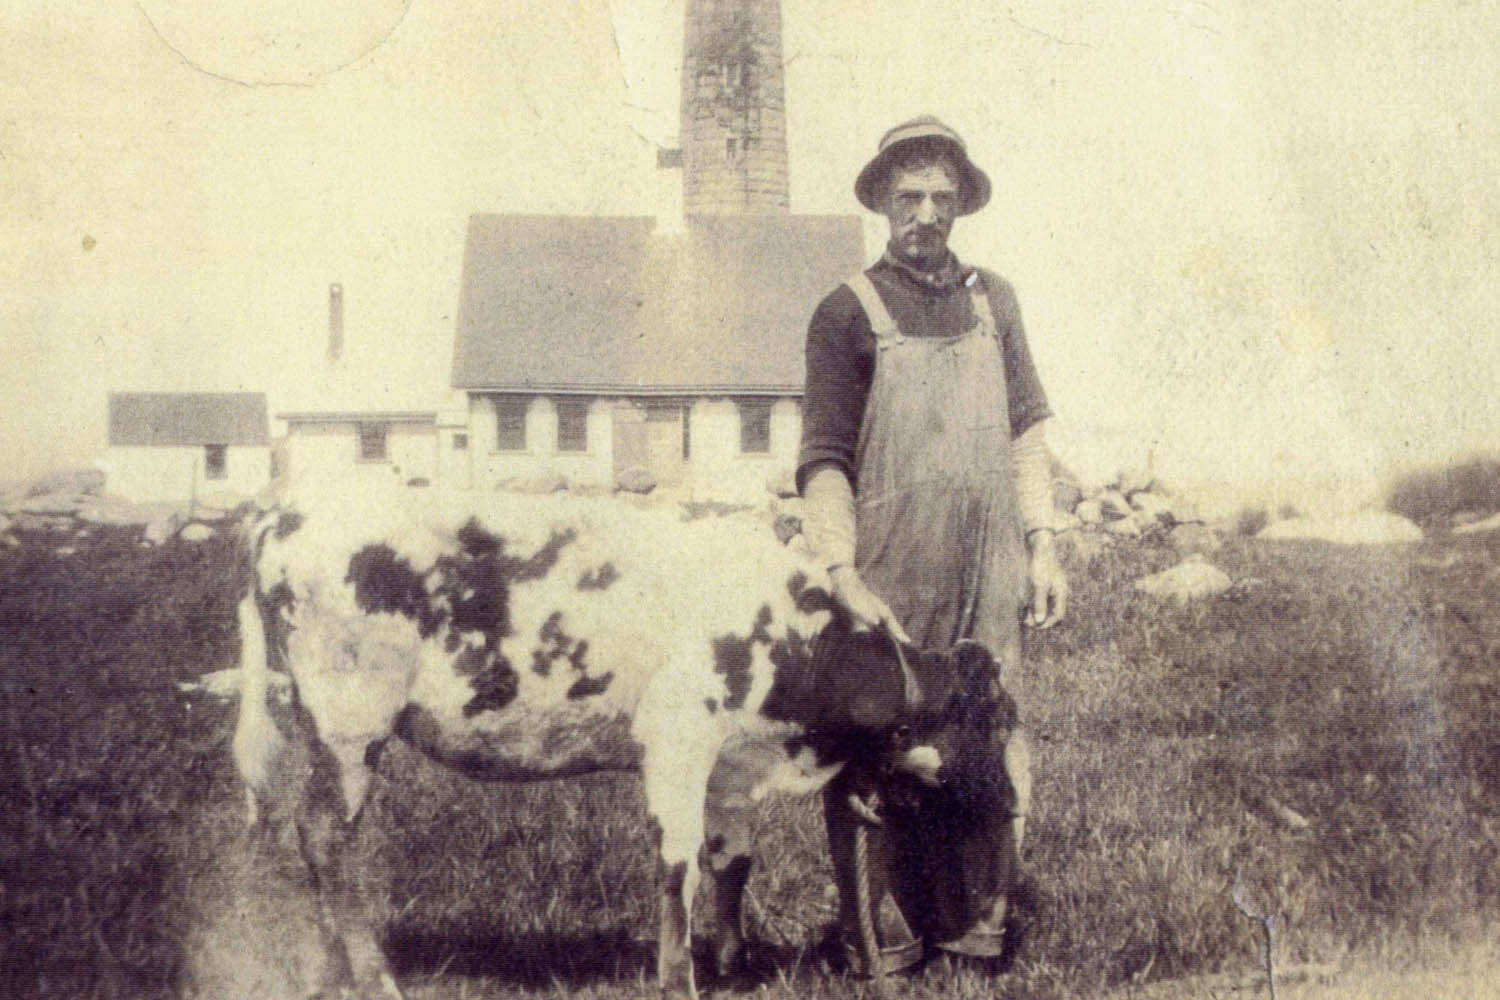 Keeper William Daggett (1870-1945) tending his cow near the North tower c.1918.